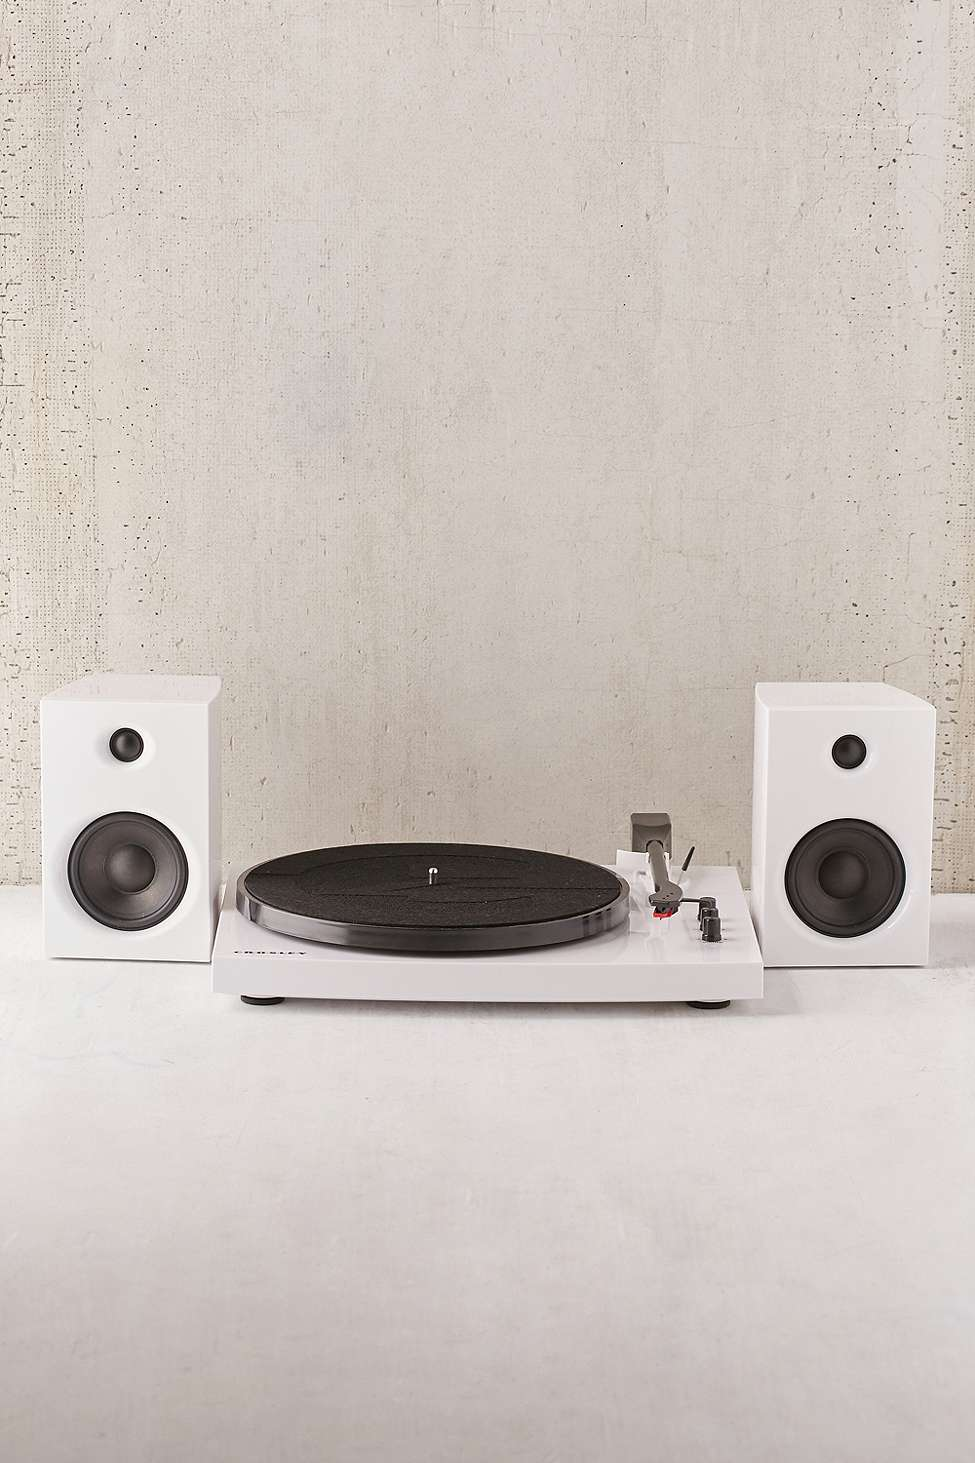 Slide View: 2: Crosley T100 White Vinyl Record Player with Speakers